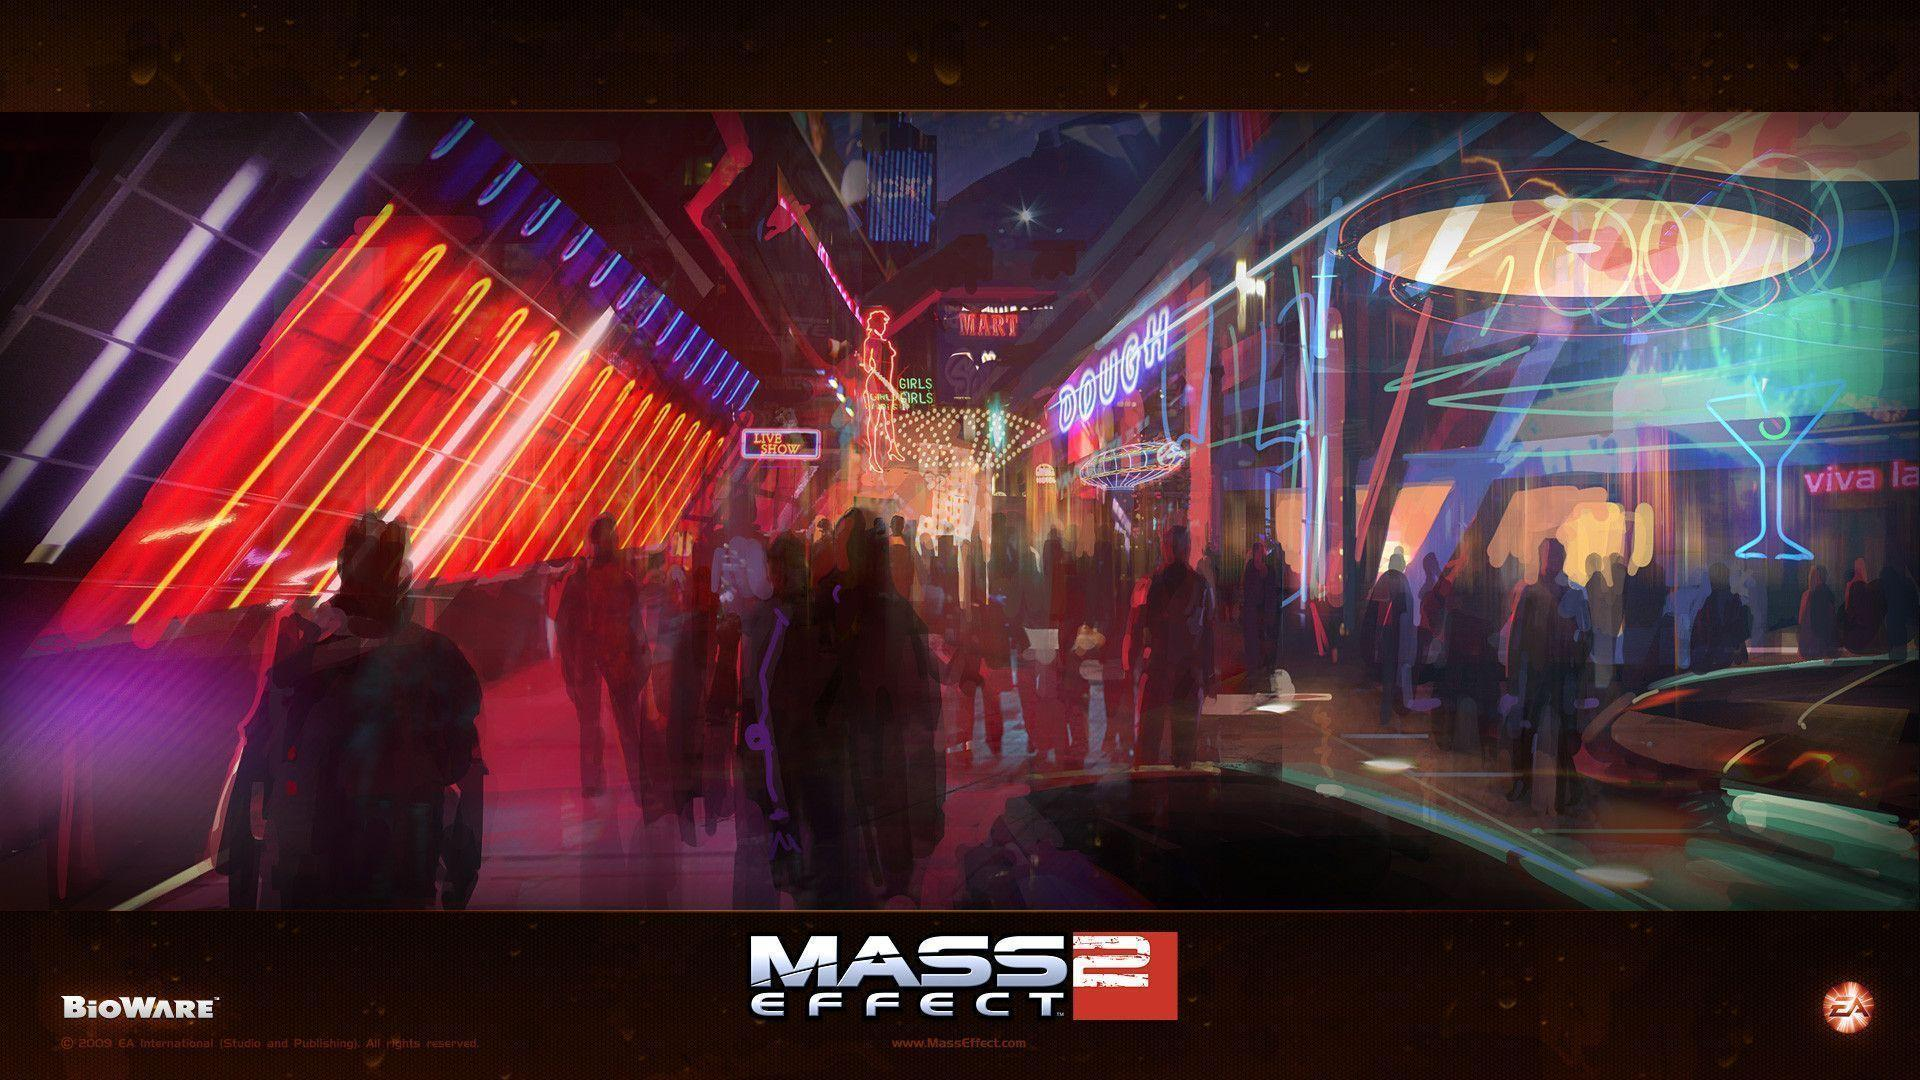 Mass Effect 2 Concept Art wallpapers